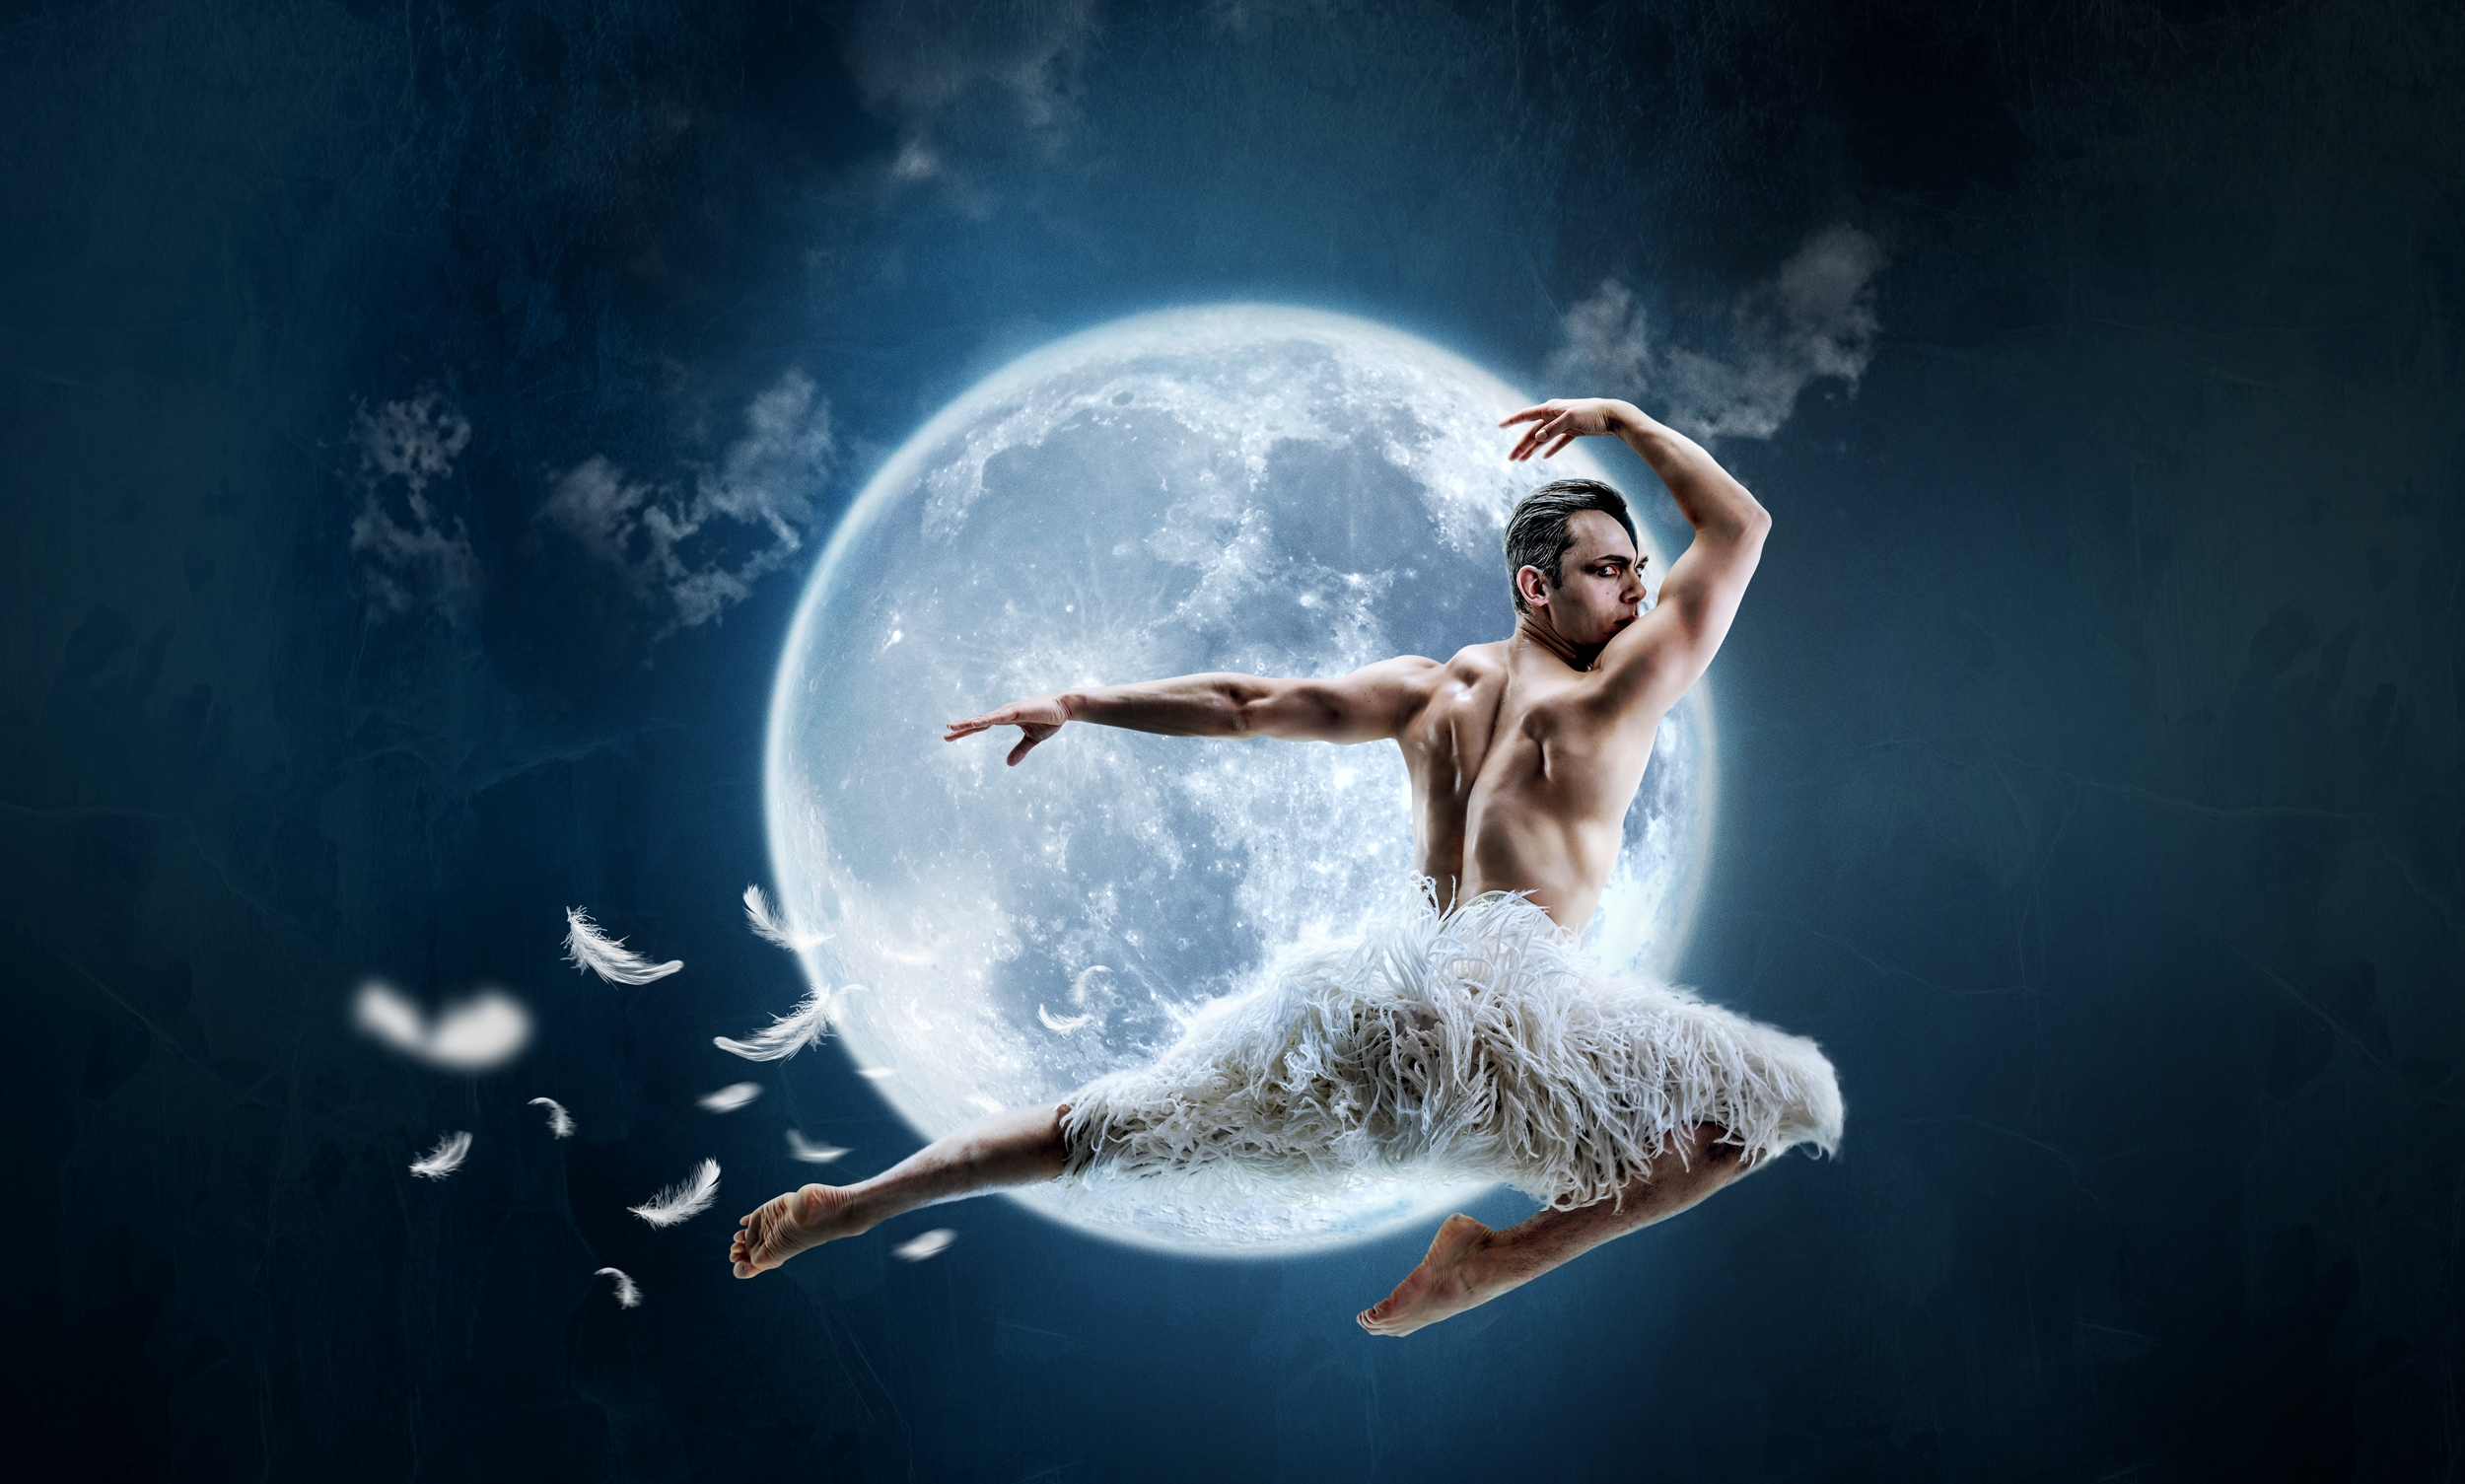 new swan lake uk tour dates announced for 2019 new adventures